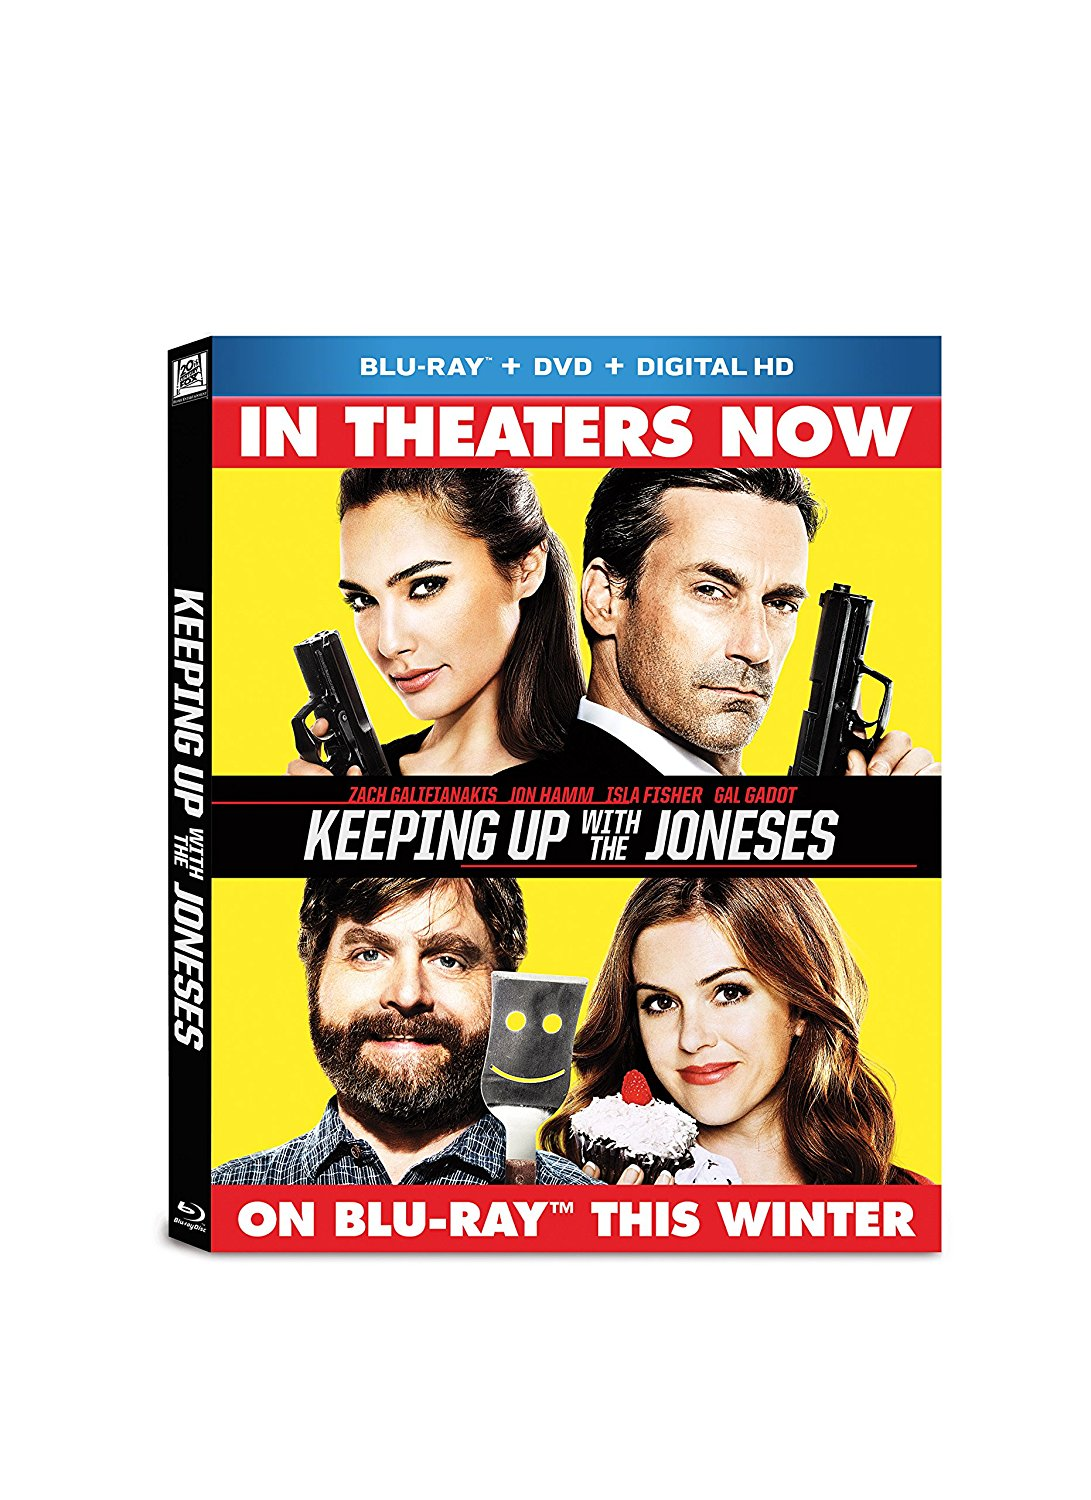 Keeping Up With The Joneses [Movie] - Keeping Up With The Joneses